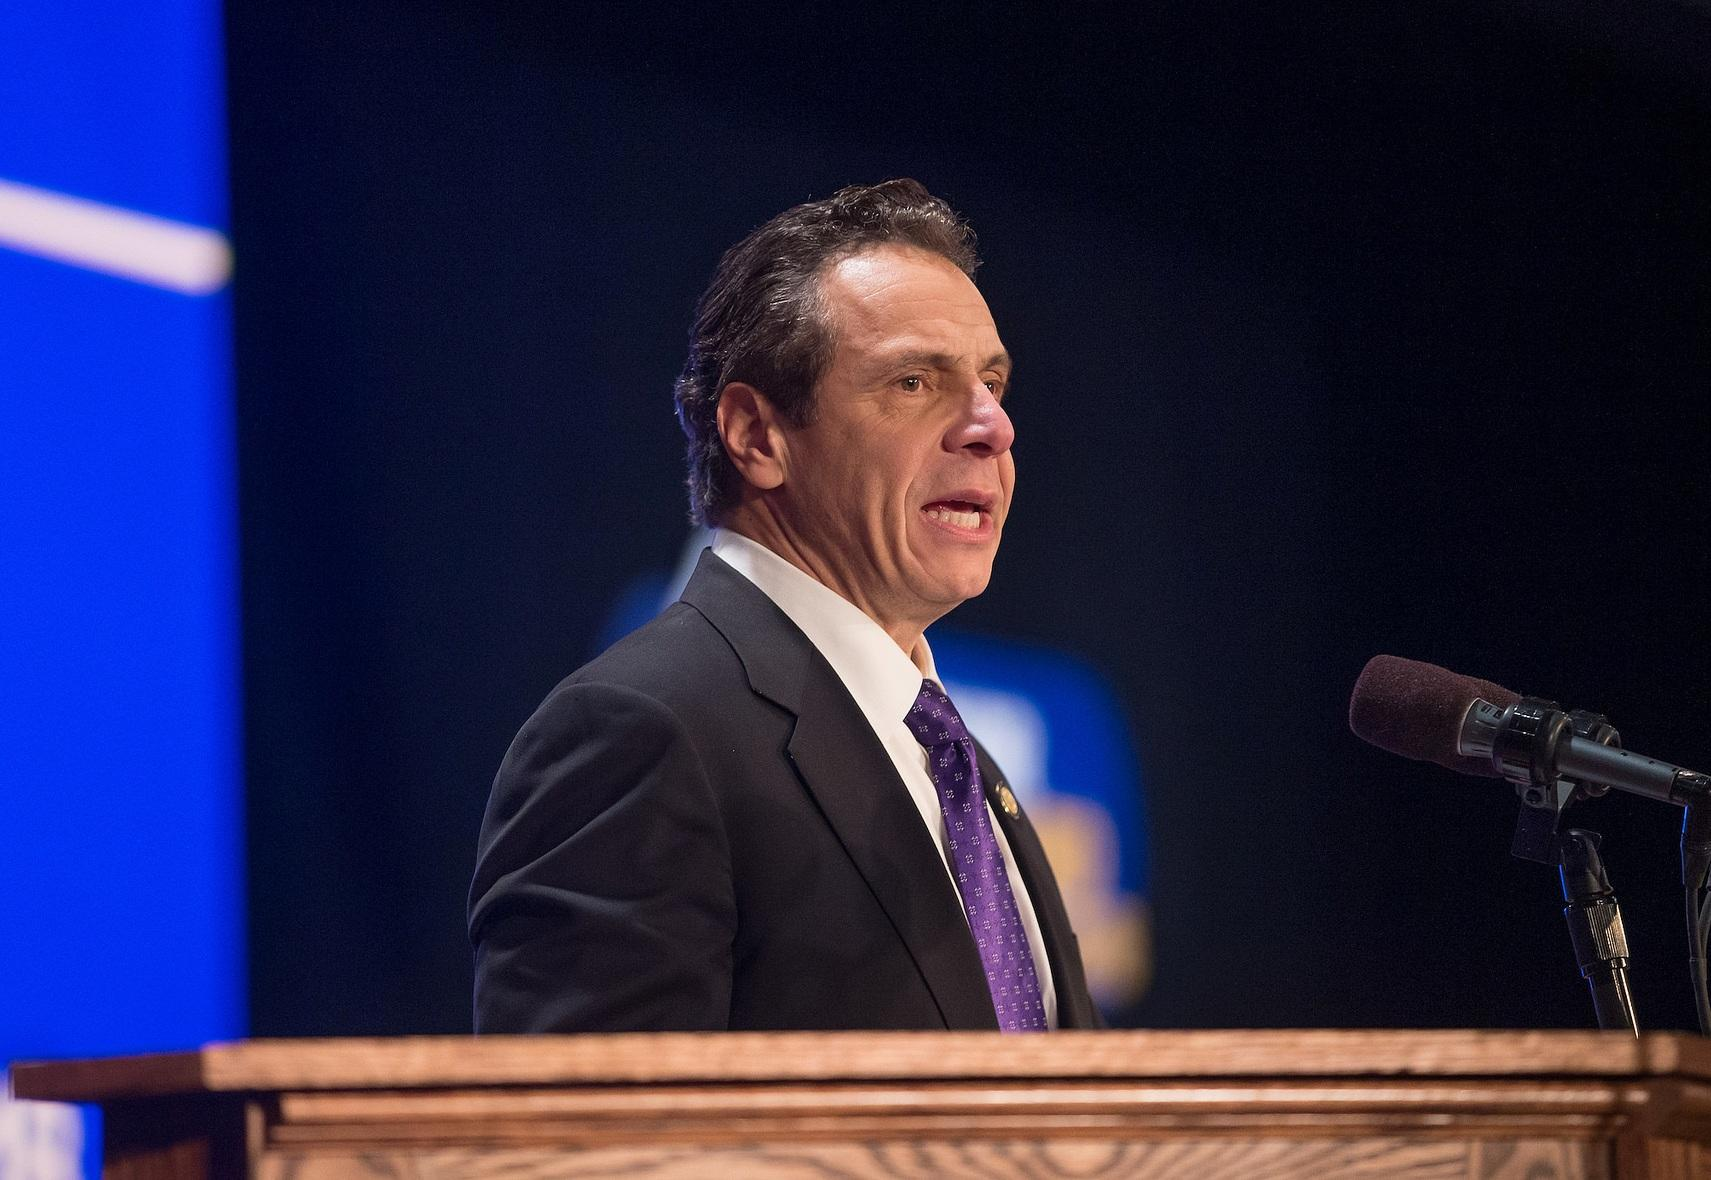 NY reviewing tax system changes after new federal tax bill